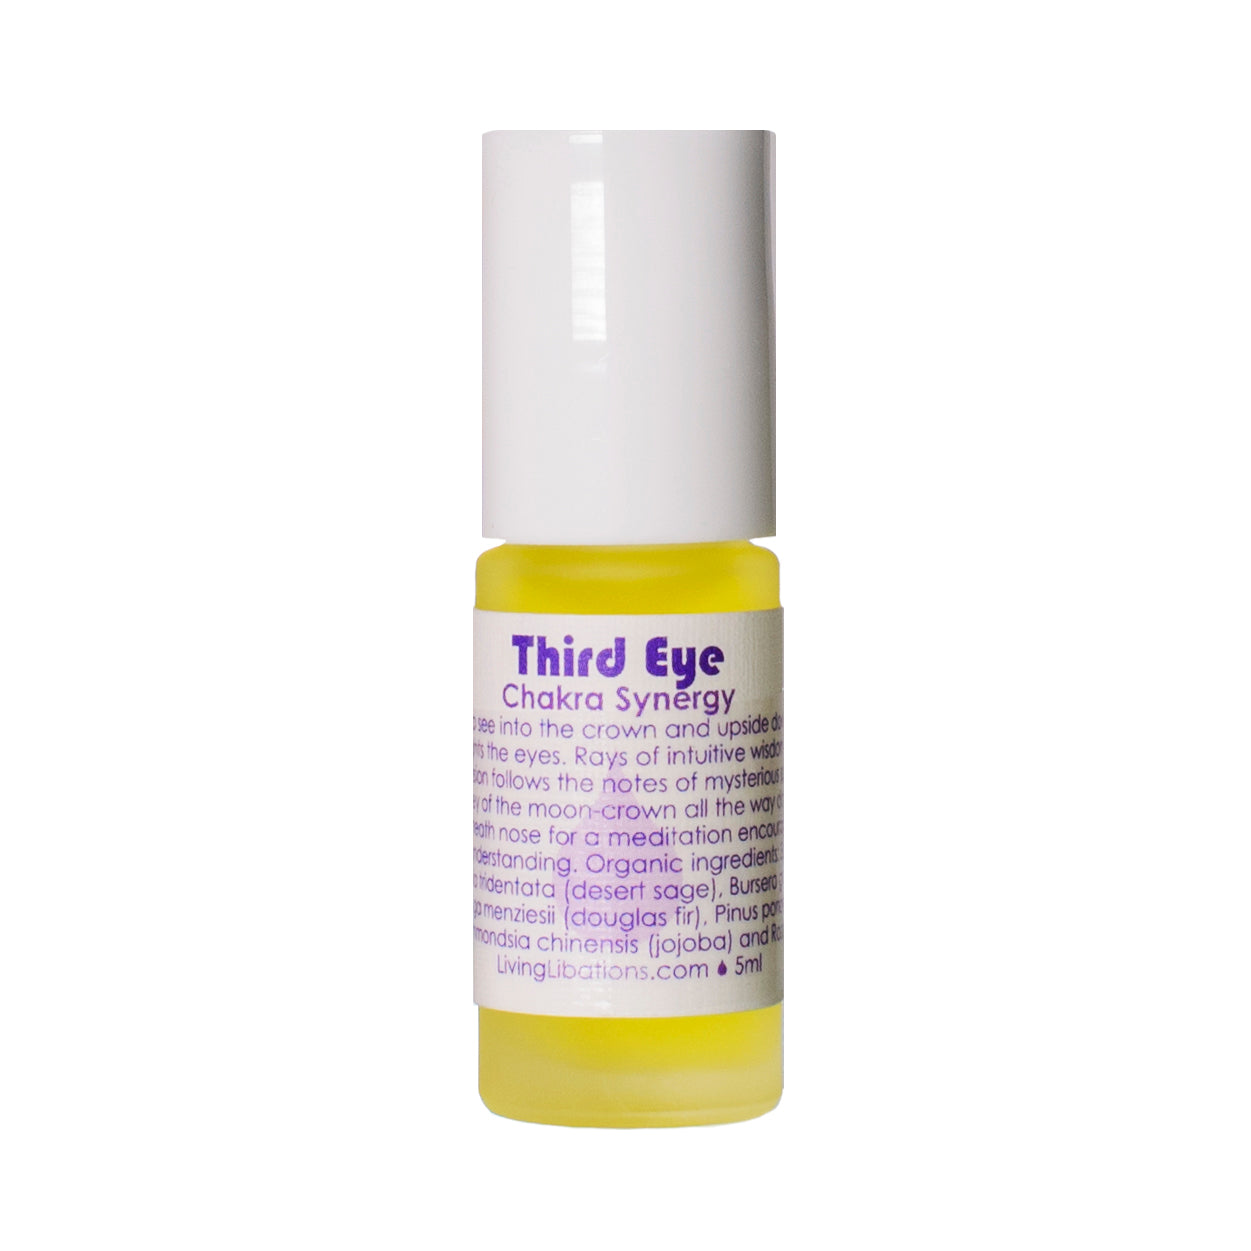 NEW! Third Eye Chakra Synergy, 5ml